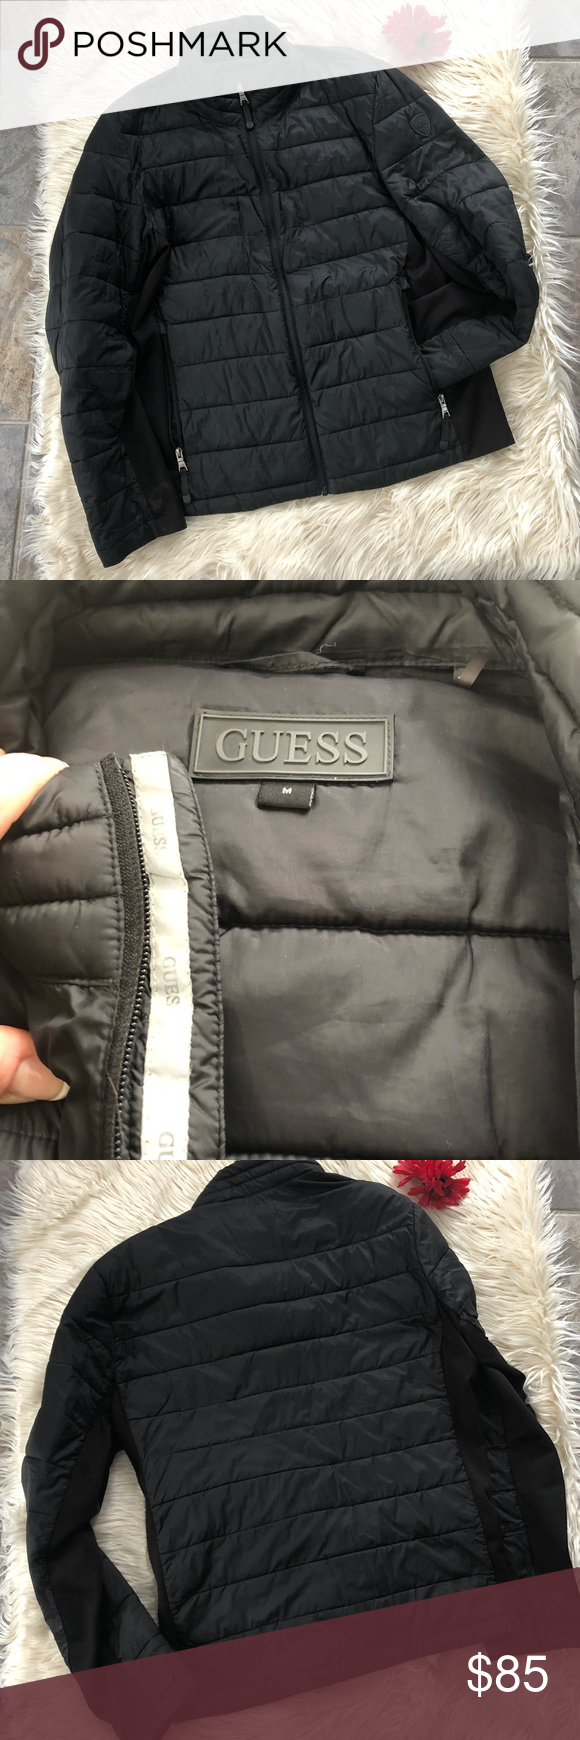 Guess Light Weight Puffer Jacket Clothes Design Jackets Fashion Trends [ 1740 x 580 Pixel ]